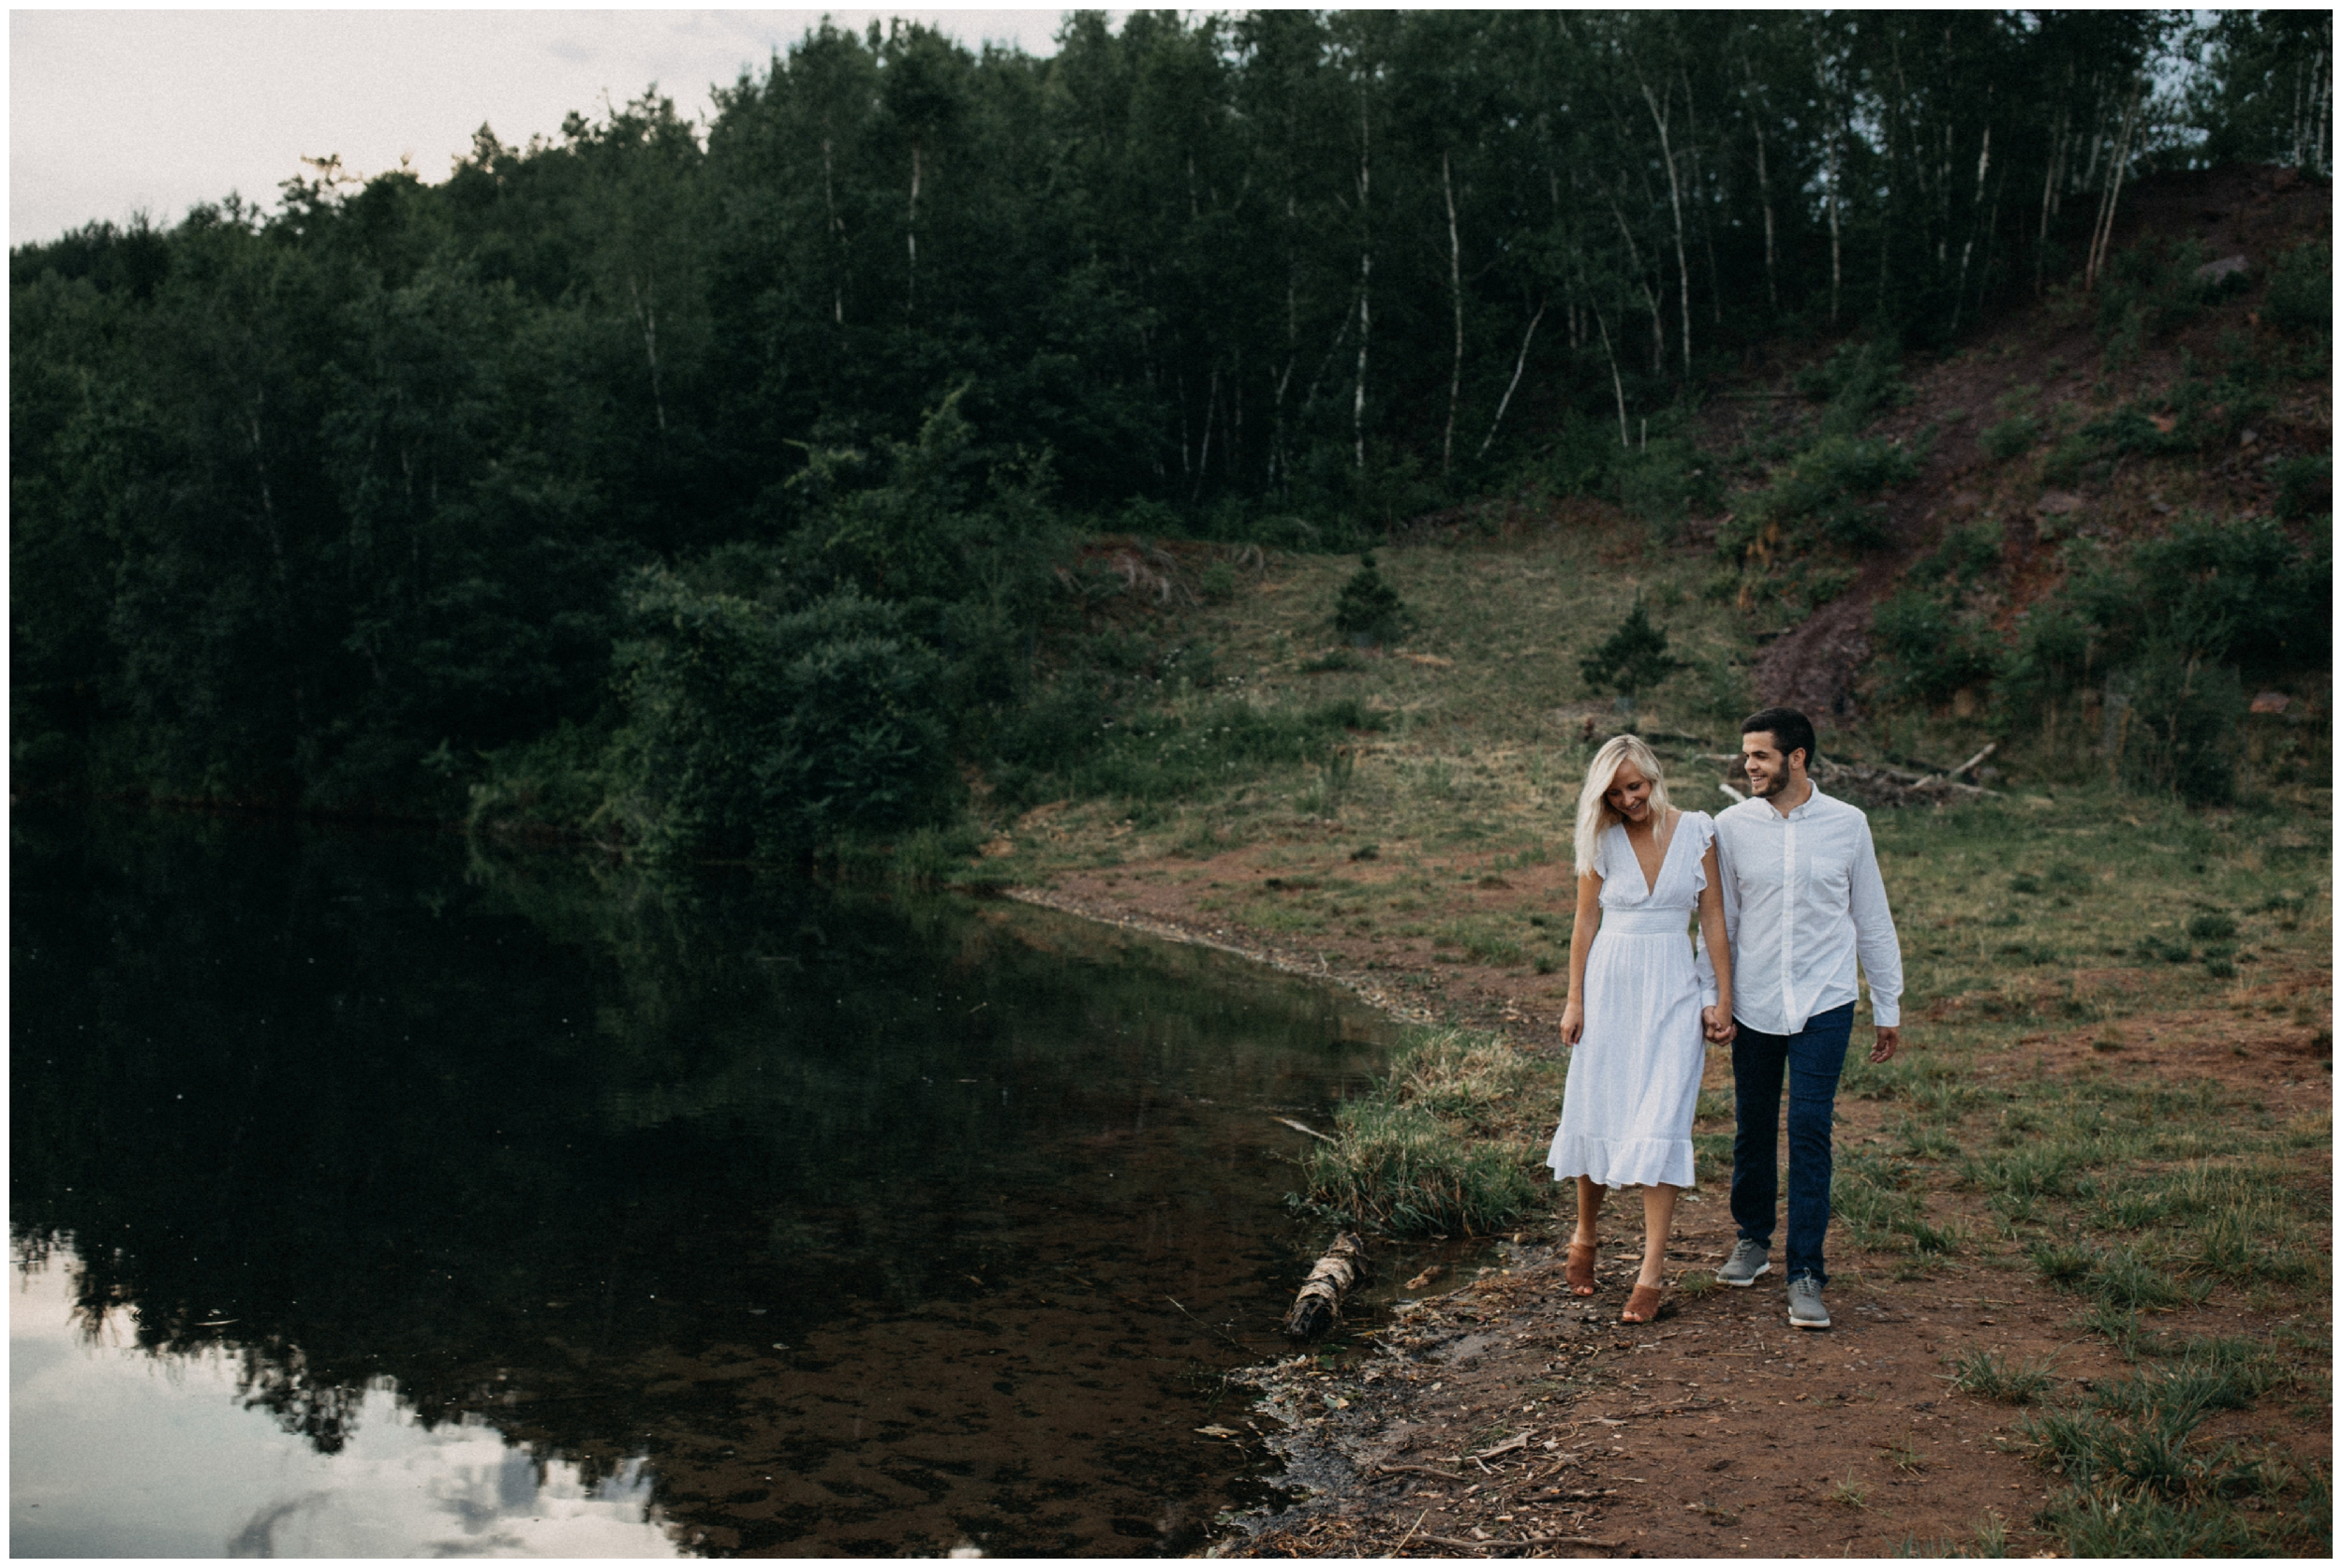 Unposed and natural photography by Brainerd Minnesota wedding and engagement photographer Britt DeZeeuw